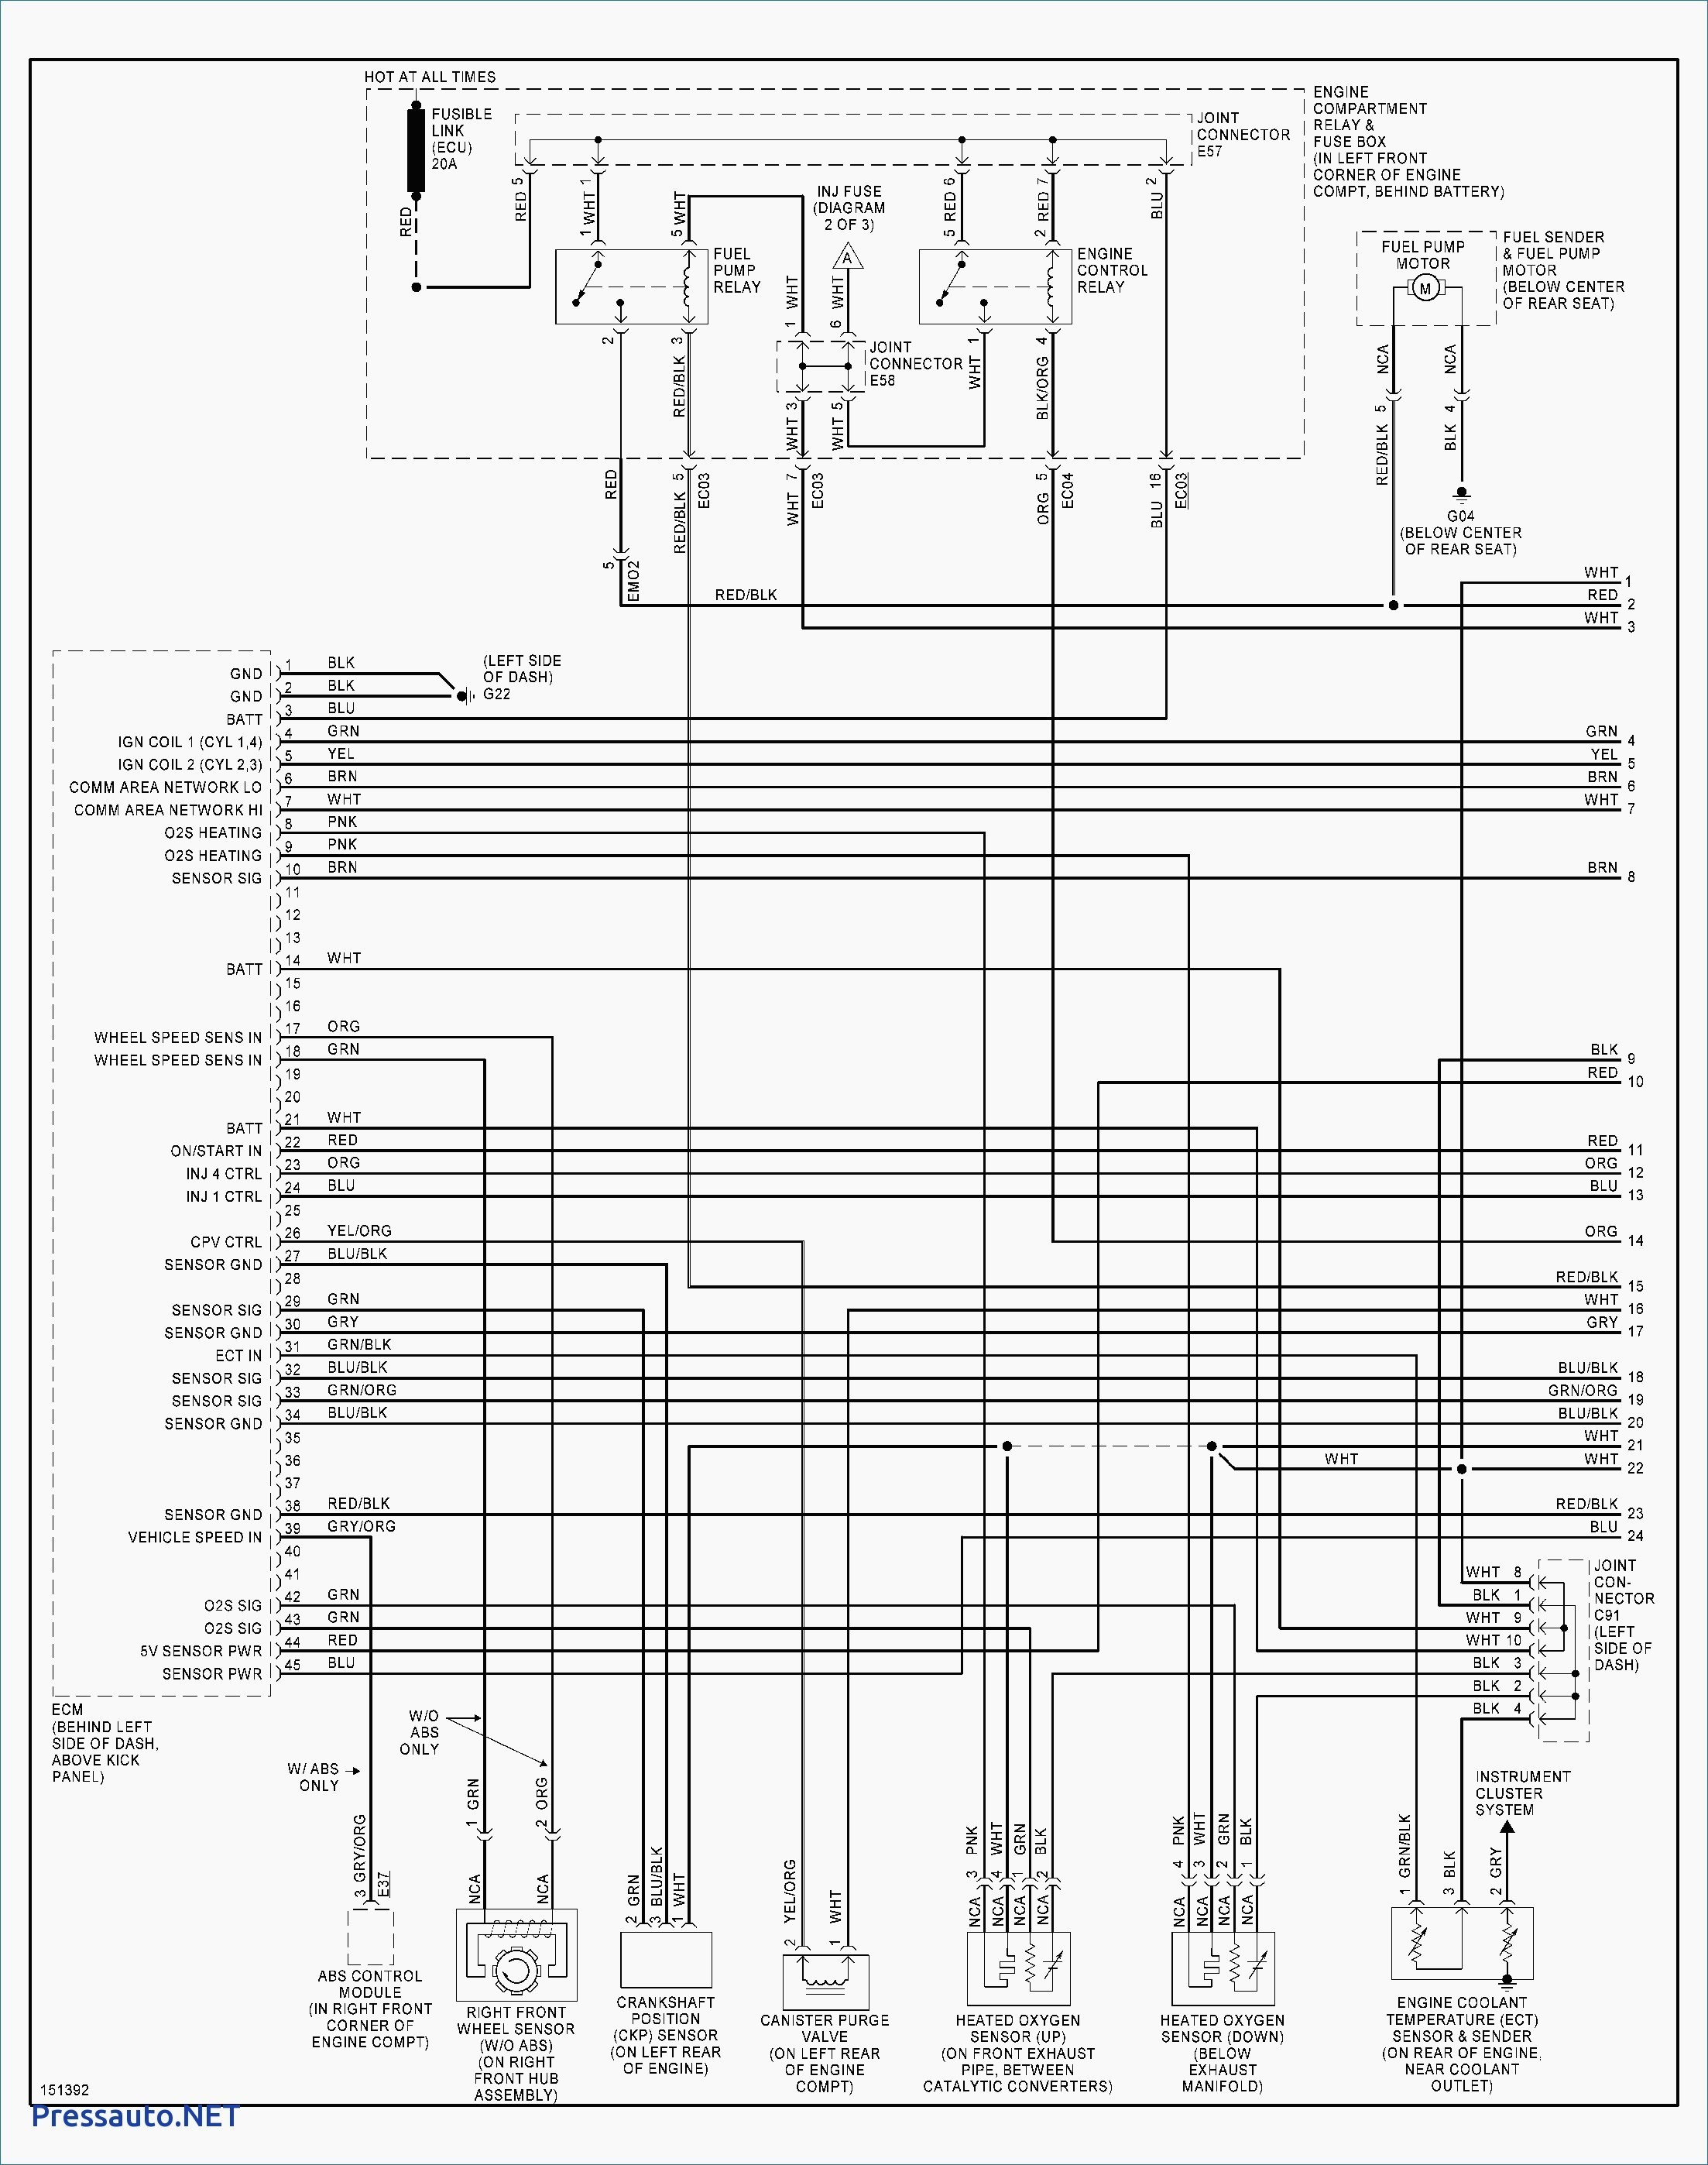 2000 Hyundai Accent Fuel Pump Wiring Diagram - WIRE Center • on snatch block diagrams, electronic circuit diagrams, smart car diagrams, pinout diagrams, gmc fuse box diagrams, battery diagrams, series and parallel circuits diagrams, electrical diagrams, switch diagrams, lighting diagrams, sincgars radio configurations diagrams, honda motorcycle repair diagrams, troubleshooting diagrams, led circuit diagrams, friendship bracelet diagrams, hvac diagrams, internet of things diagrams, motor diagrams, engine diagrams, transformer diagrams,